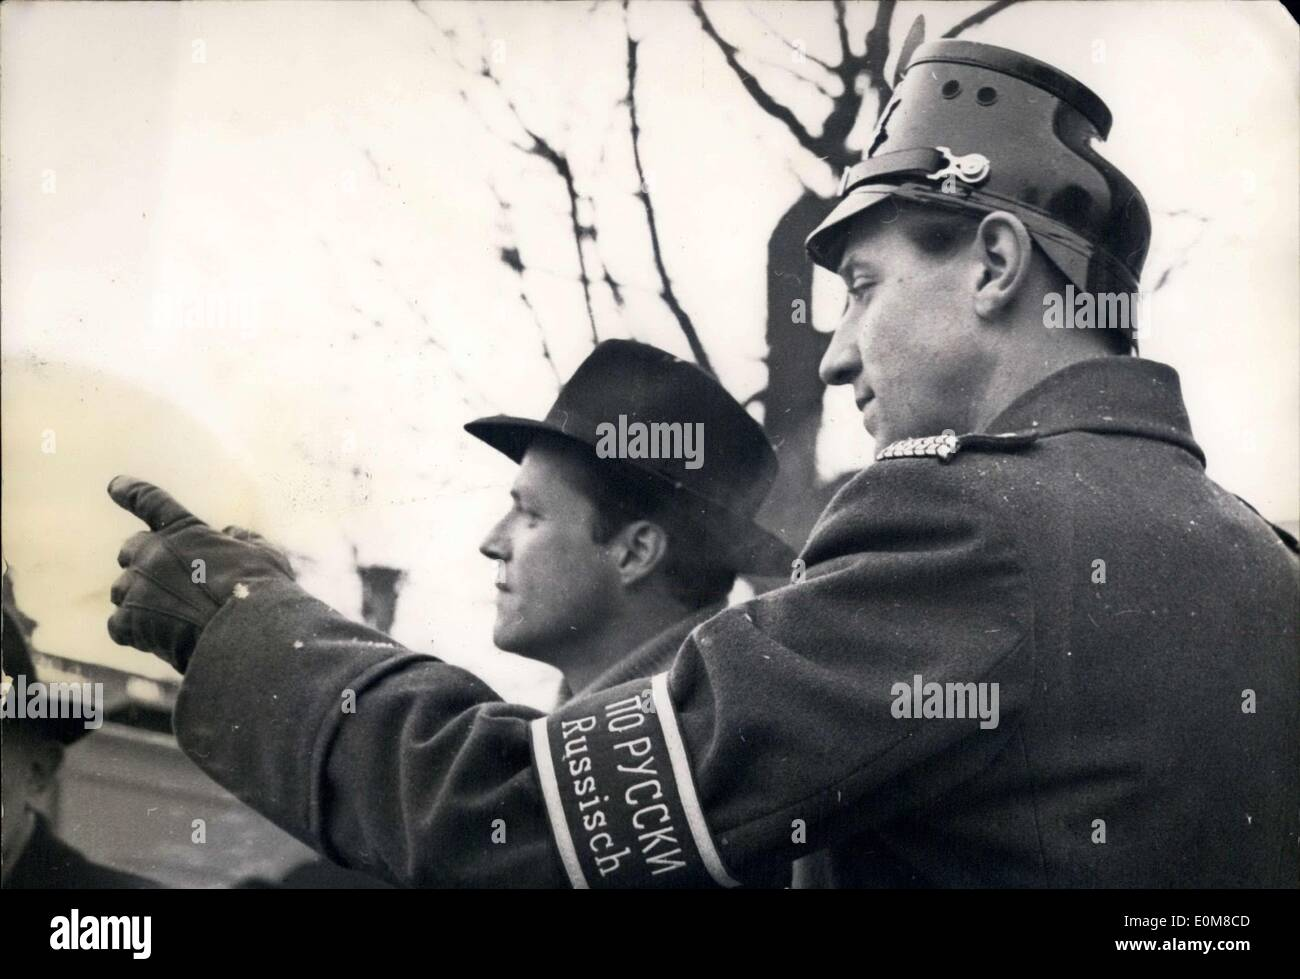 Jan. 31, 1954 - Berlin policemen have organized a translation service to help ease the burden on foreign journalists in the city for the major Berlin Conference of the four Allied Powers. This policemen translates Russian. - Stock Image